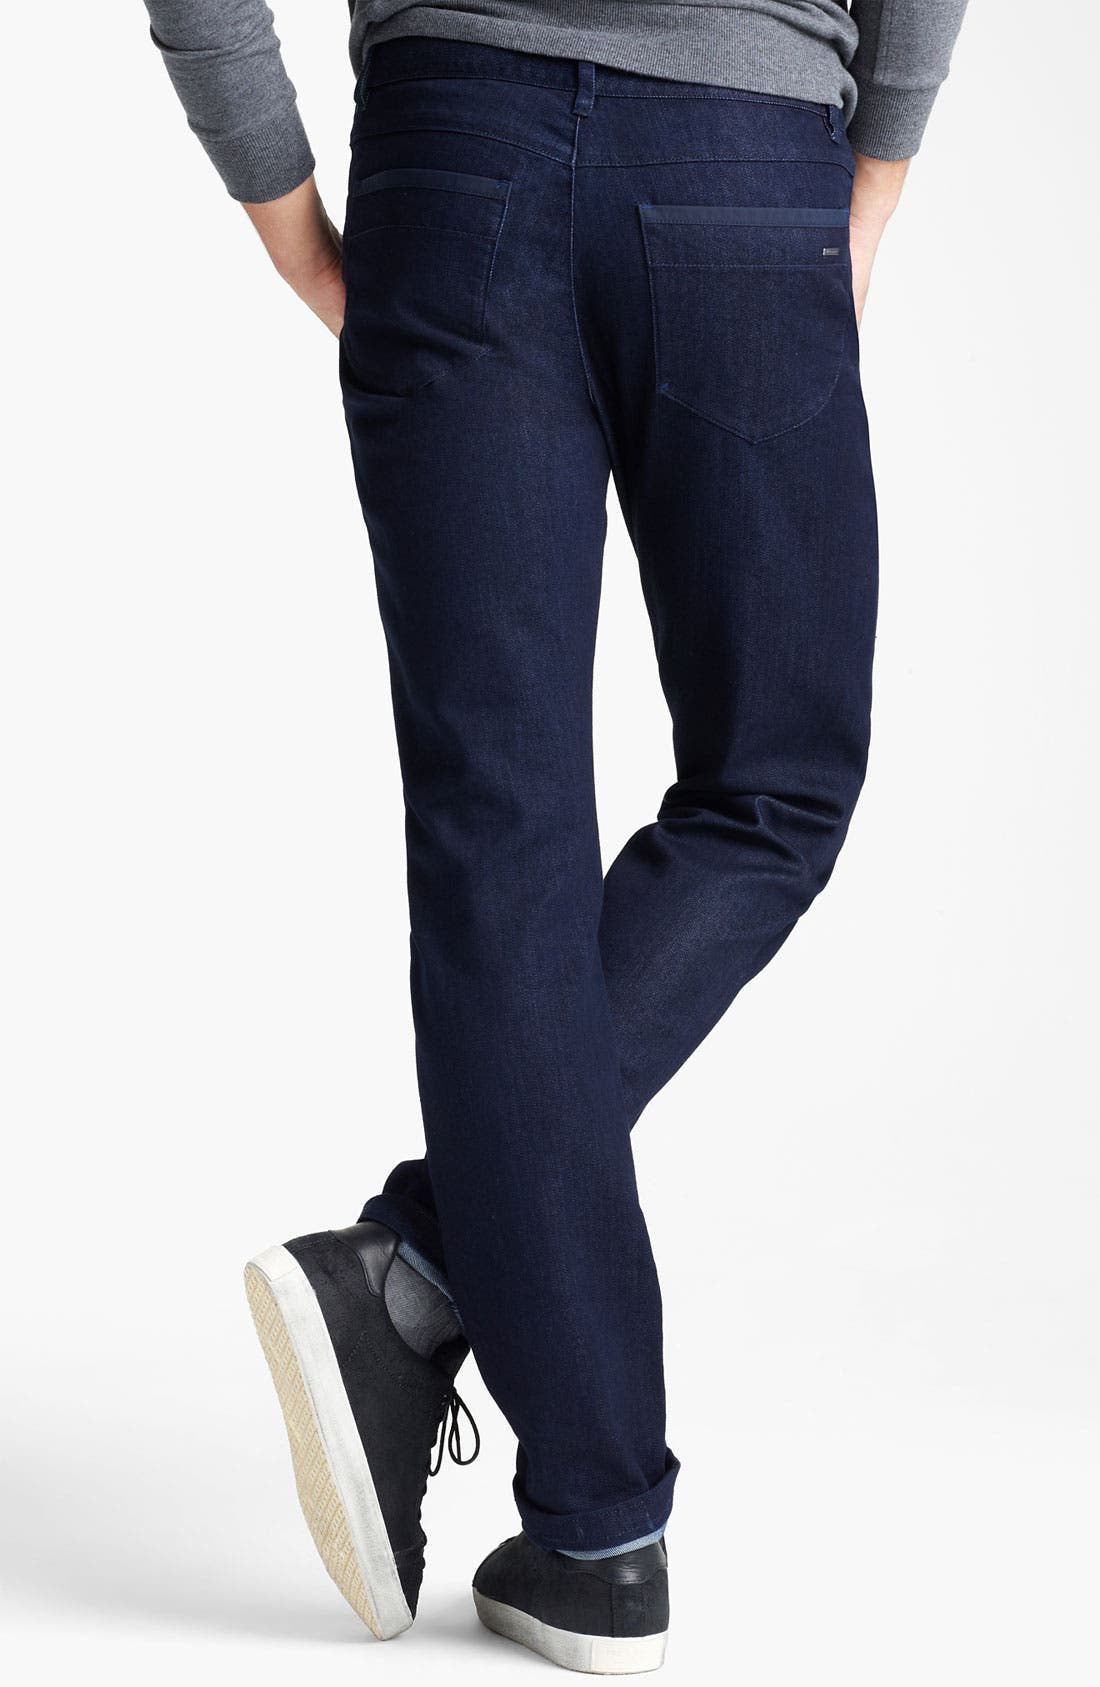 Alternate Image 2  - Zegna Sport 'Cool Max' Straight Leg Jeans (Dark Blue)